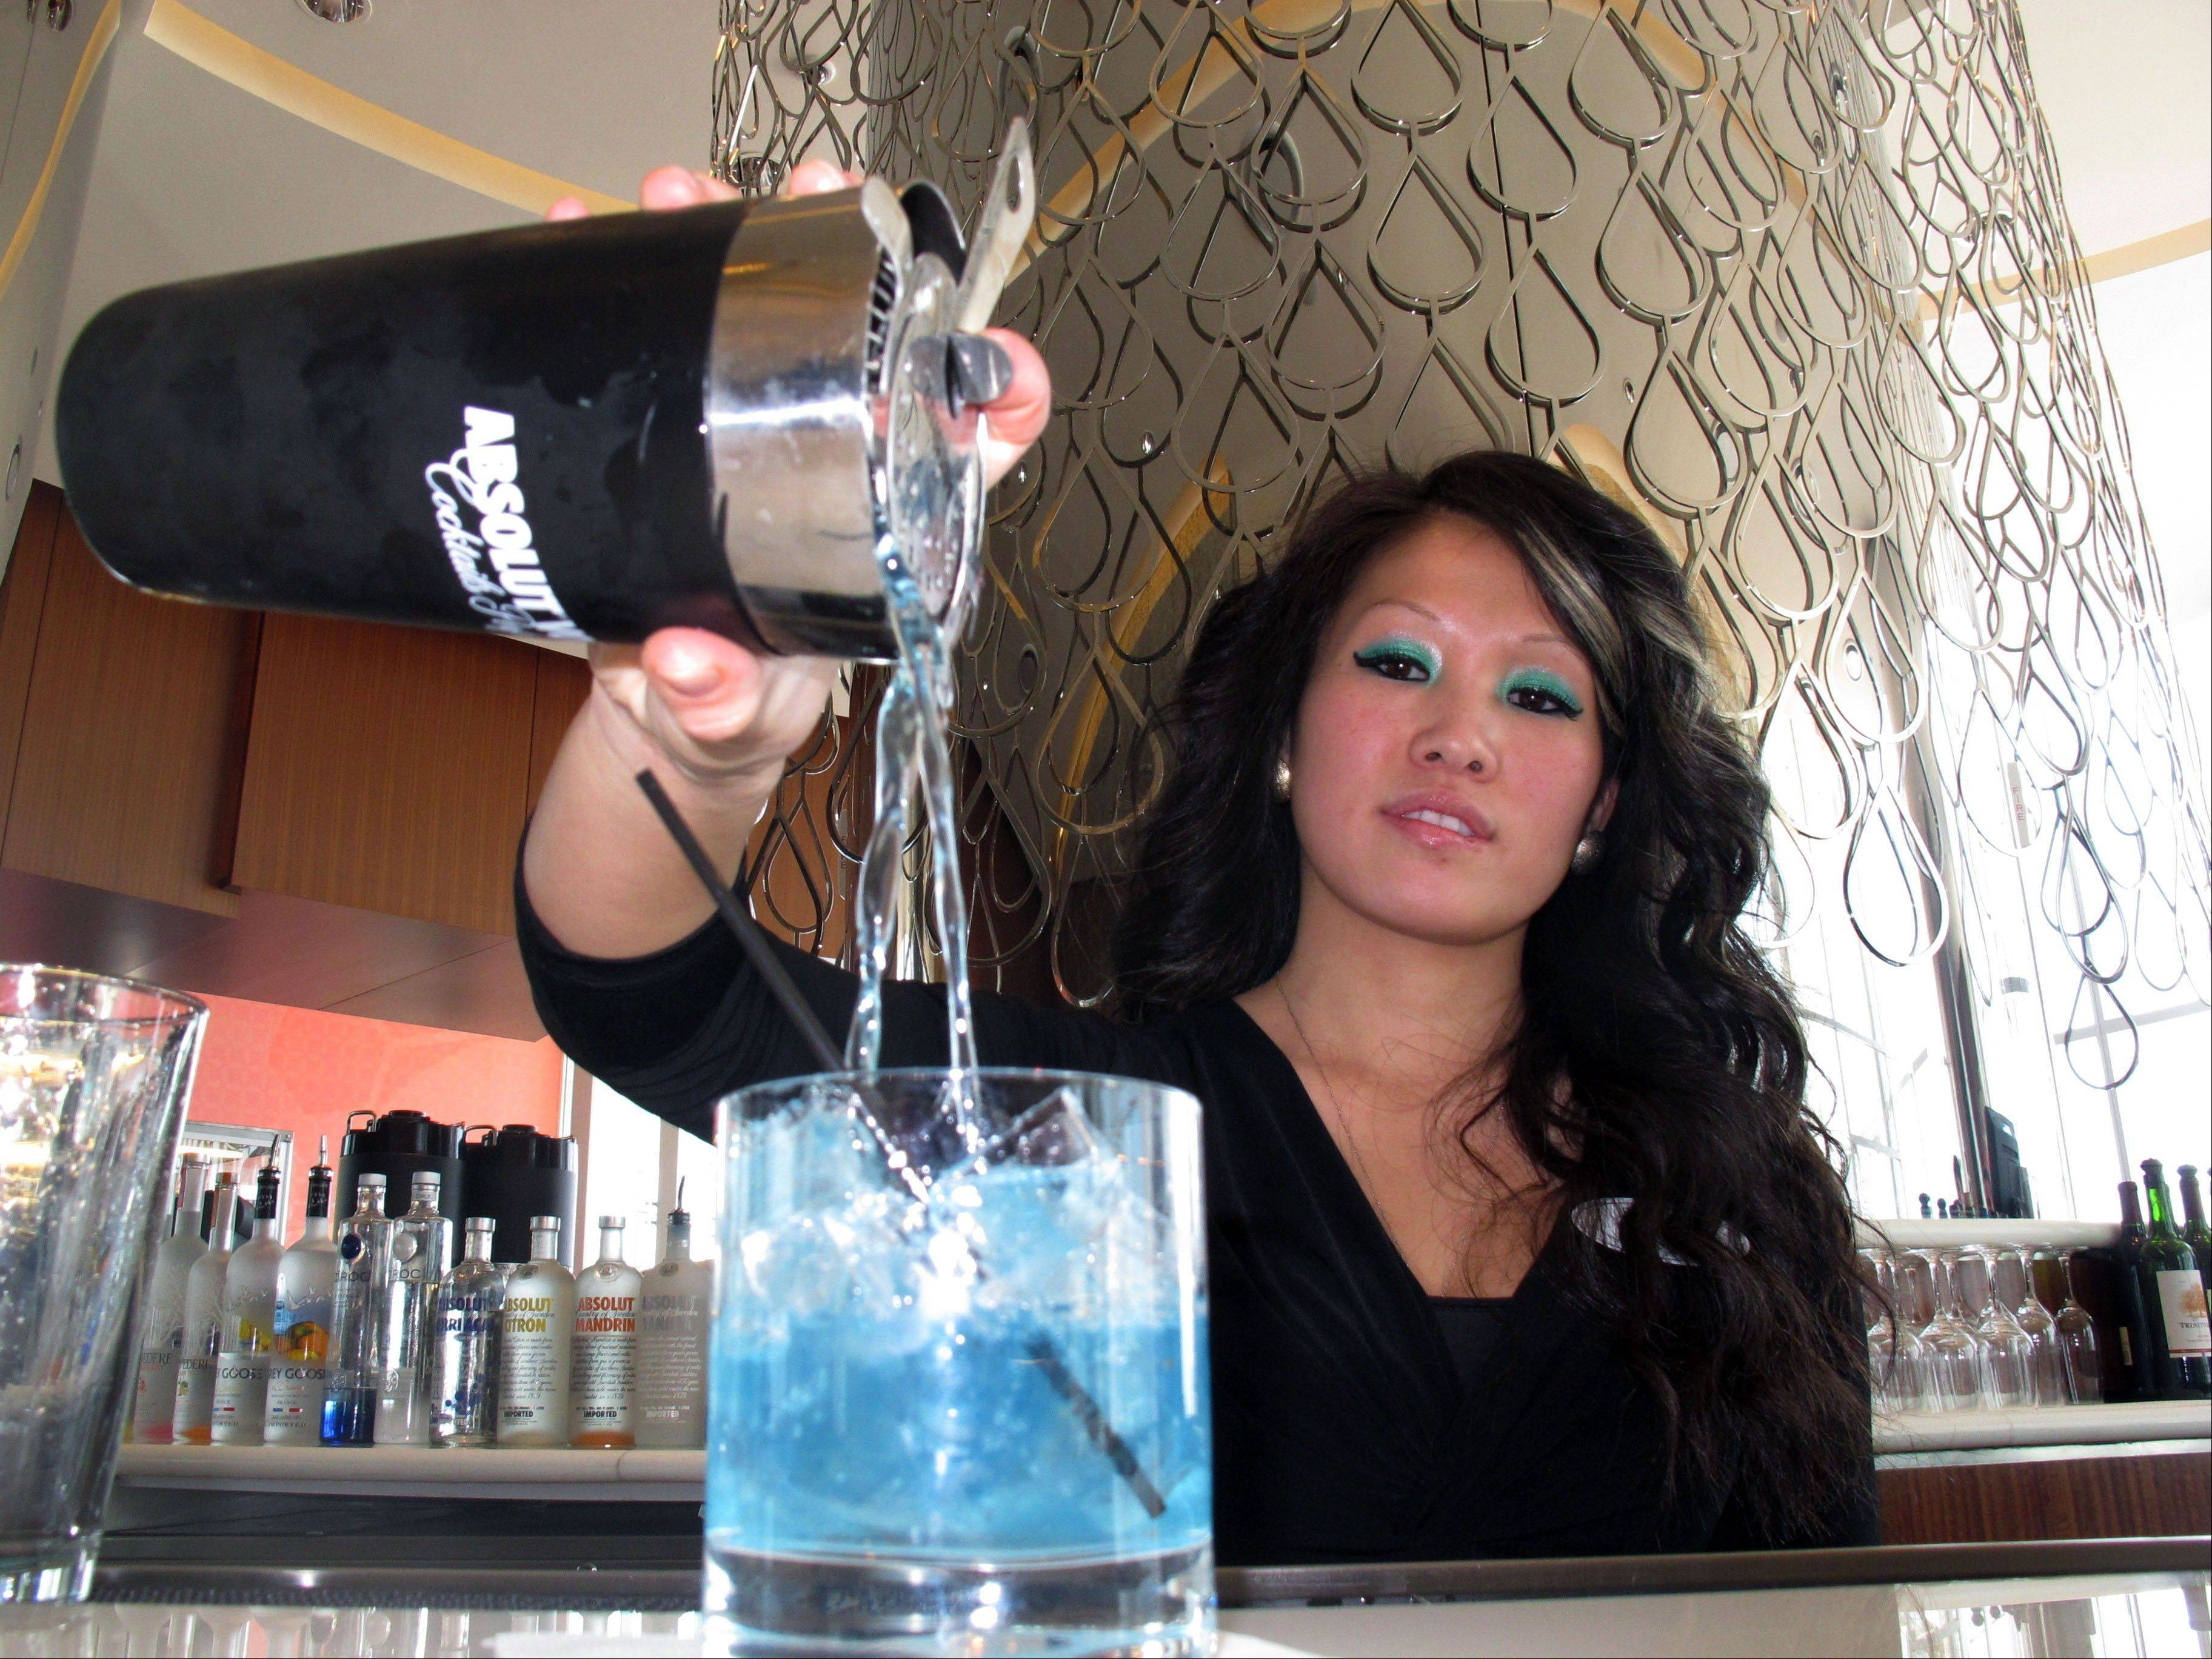 Associated Press/April 8 Mary Ma, a bartender at Revel, Atlantic City, N.J.'s newest casino, pours a drink at one of the casino's bars. The Institute for Supply Management said Friday that its index of non-manufacturing activity fell to 53.1 in April from 54.4 in March. Any reading above 50 indicates expansion.